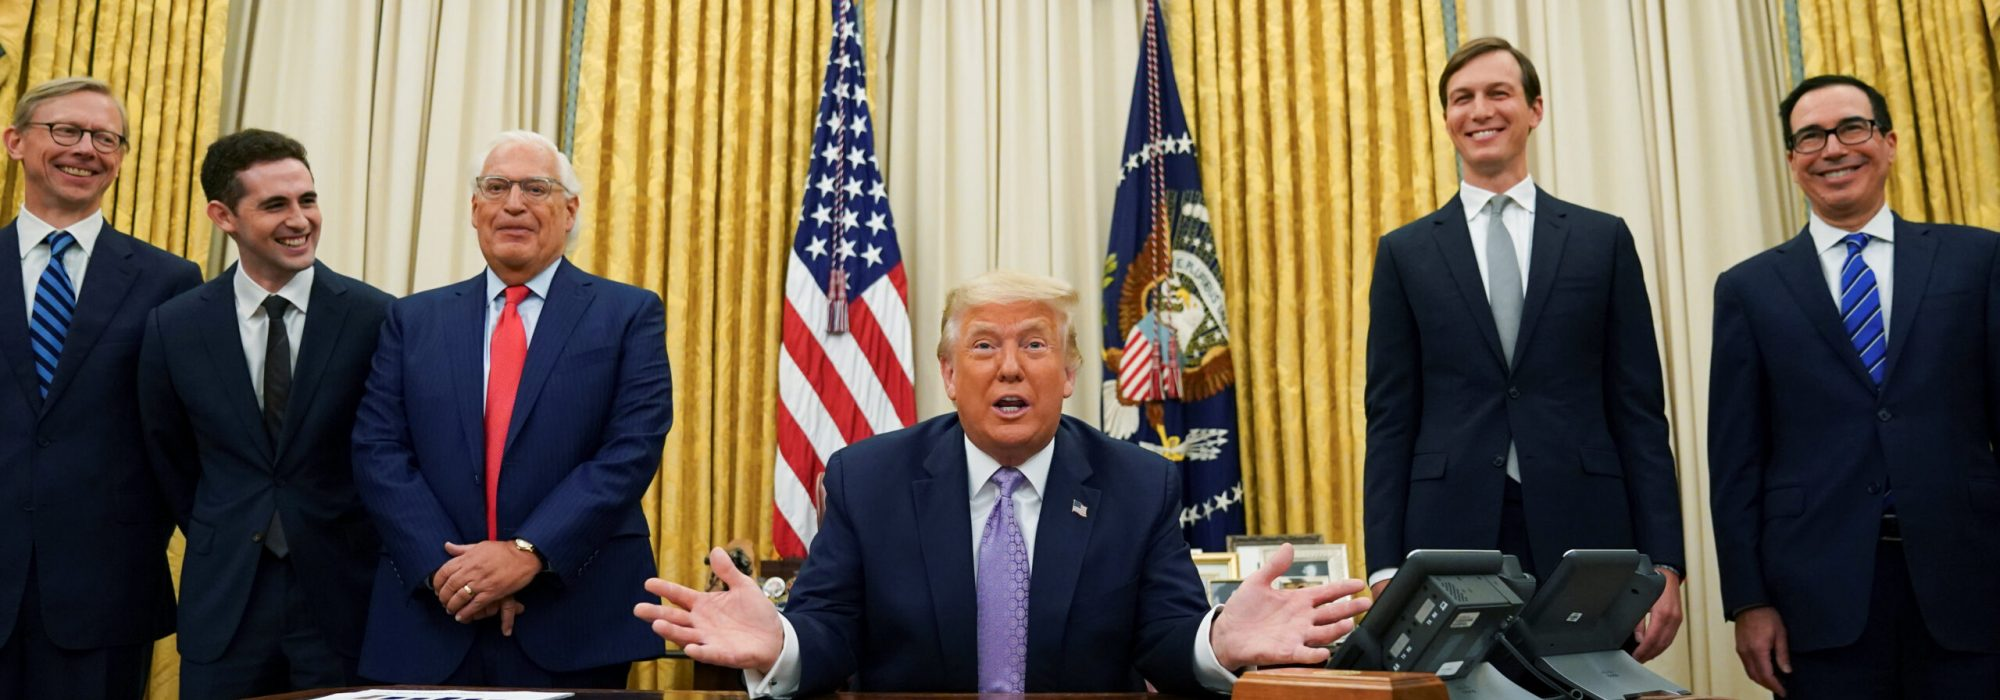 U.S. President Donald Trump announces that Israel and the United Arab Emirates have reached a peace deal that will lead to the full normalization of diplomatic relations between the two Middle Eastern nations in an agreement that Trump helped broker, at White House in Washington, U.S., August 13, 2020.,Image: 552162260, License: Rights-managed, Restrictions: , Model Release: no, Credit line: KEVIN LAMARQUE / Reuters / Forum